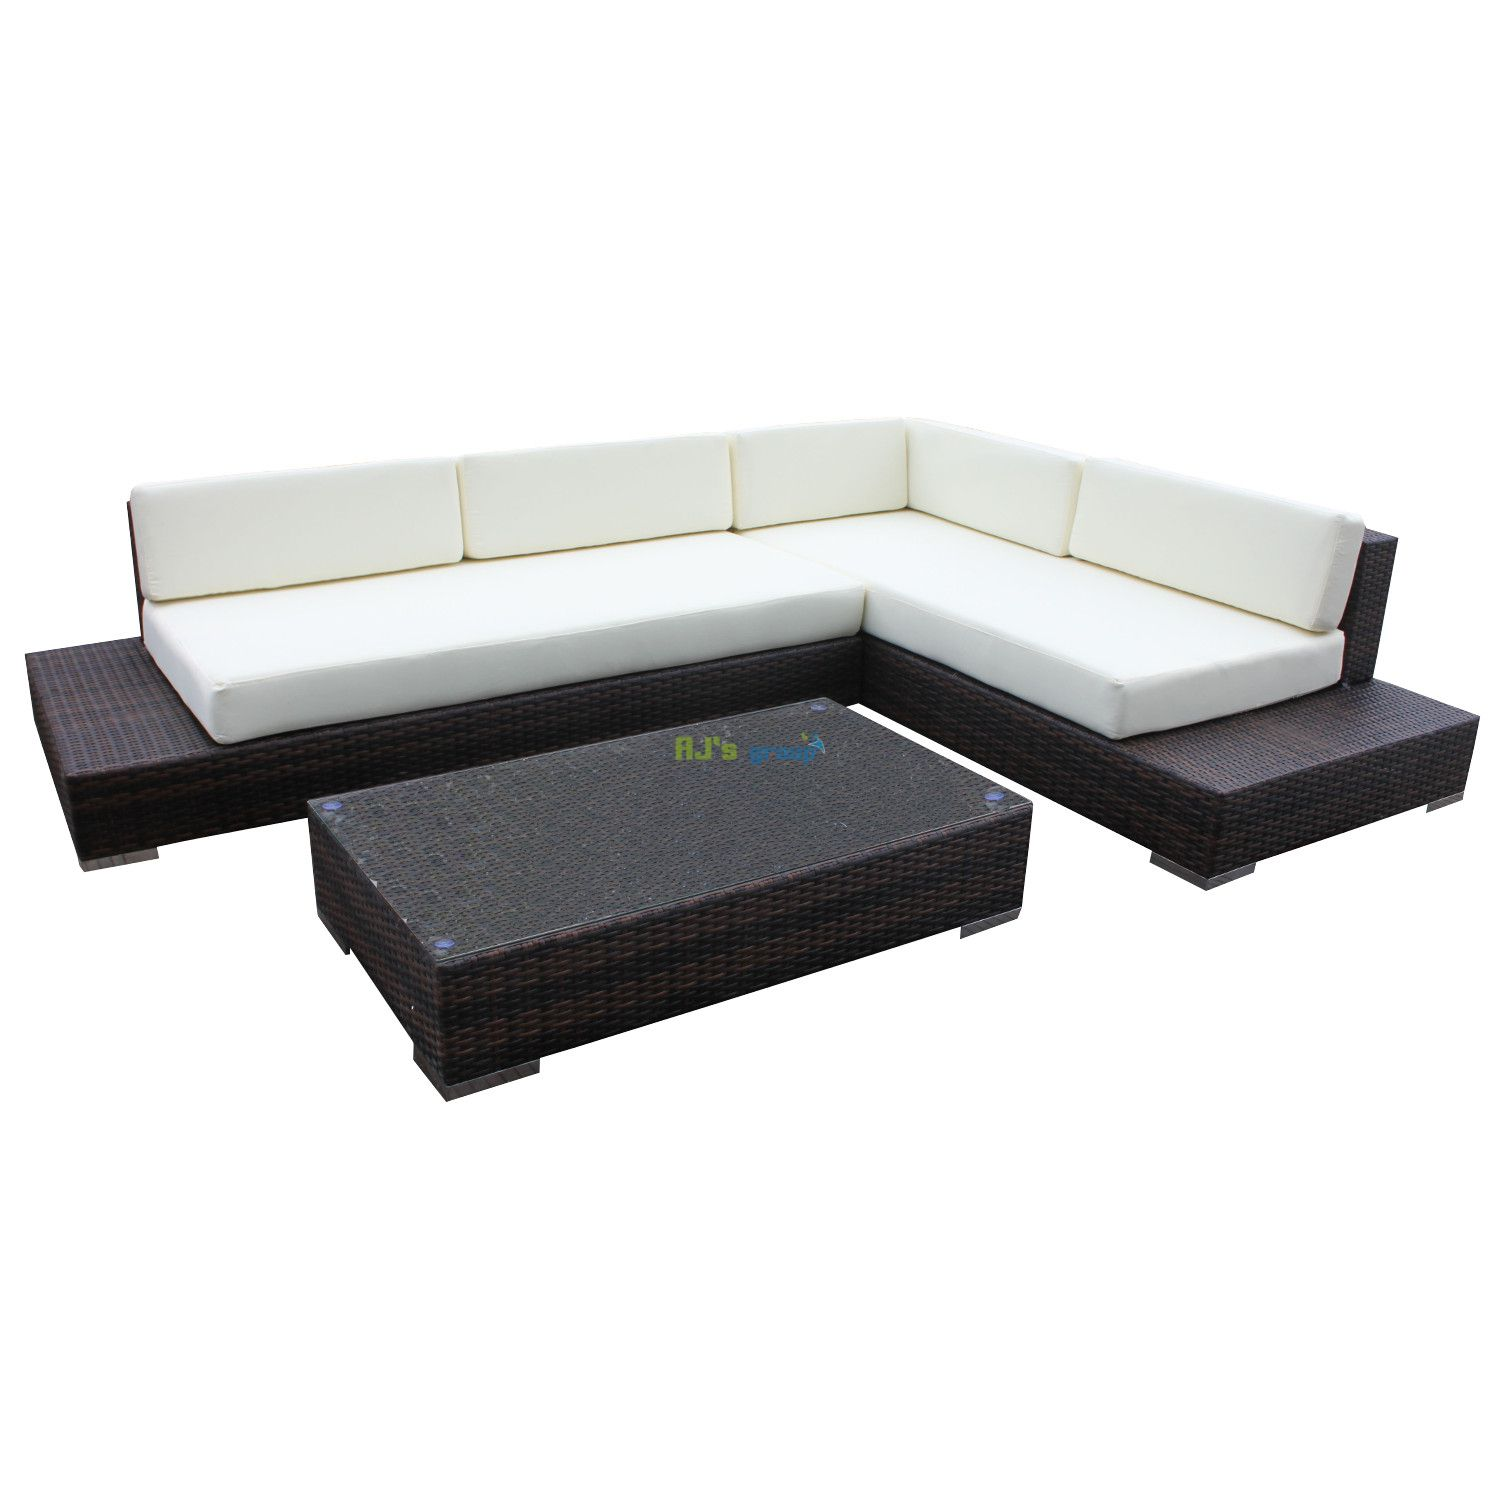 rattan wicker garden patio set atlanta outdoor lounge furniture couch. Black Bedroom Furniture Sets. Home Design Ideas